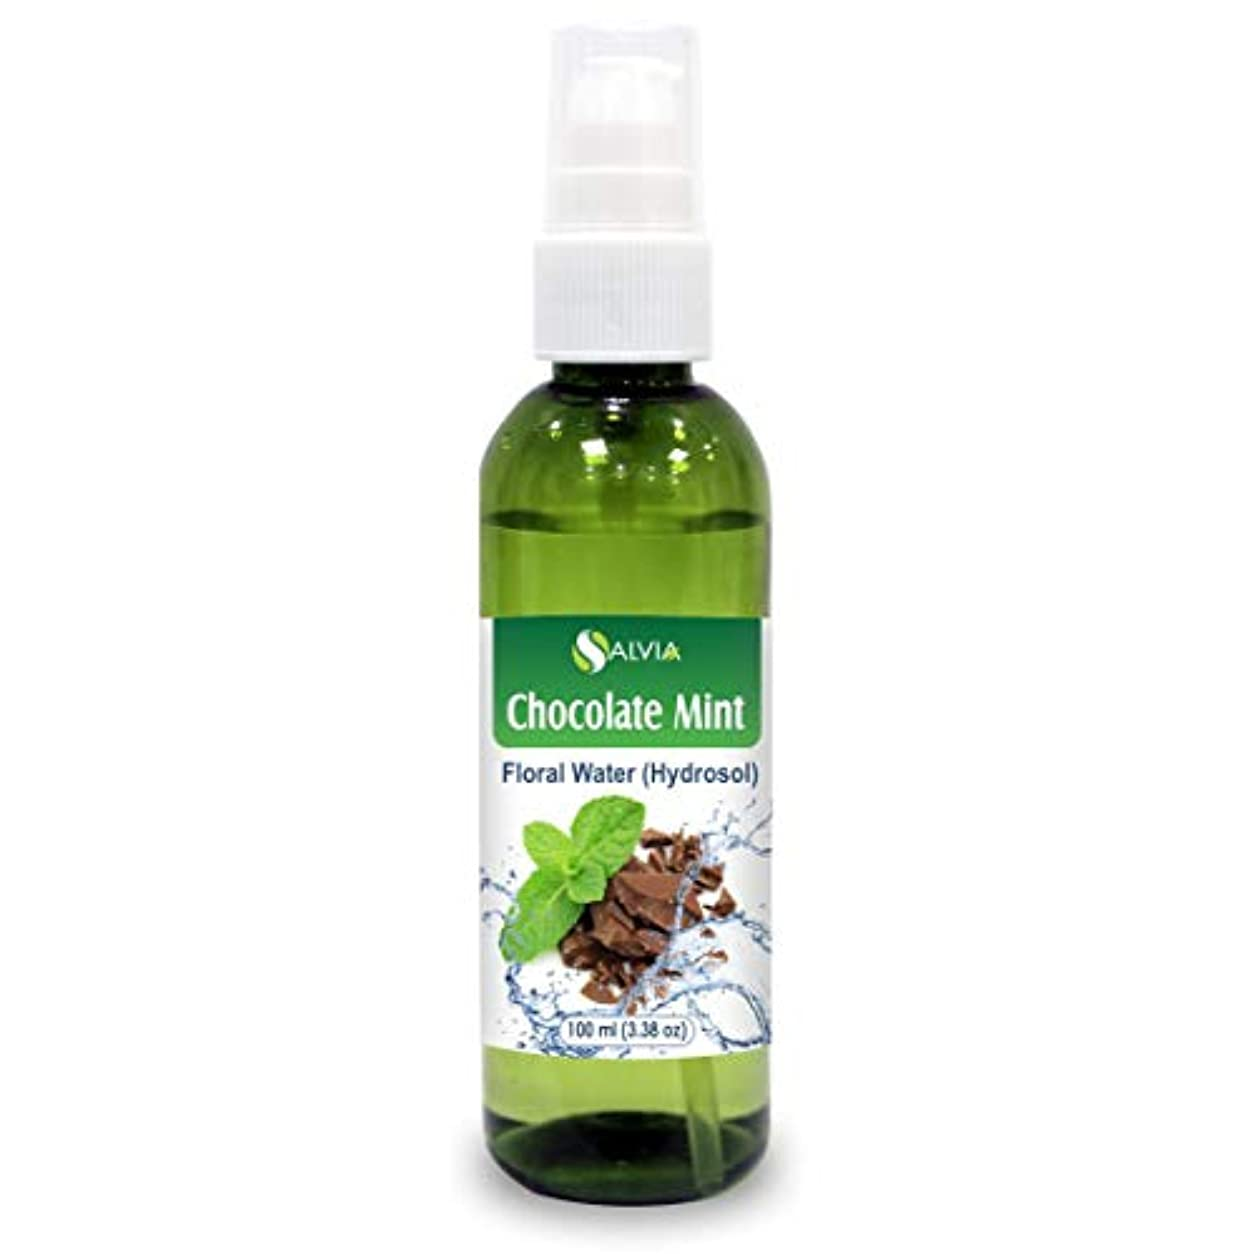 Chocolate Mint Floral Water 100ml (Hydrosol) 100% Pure And Natural